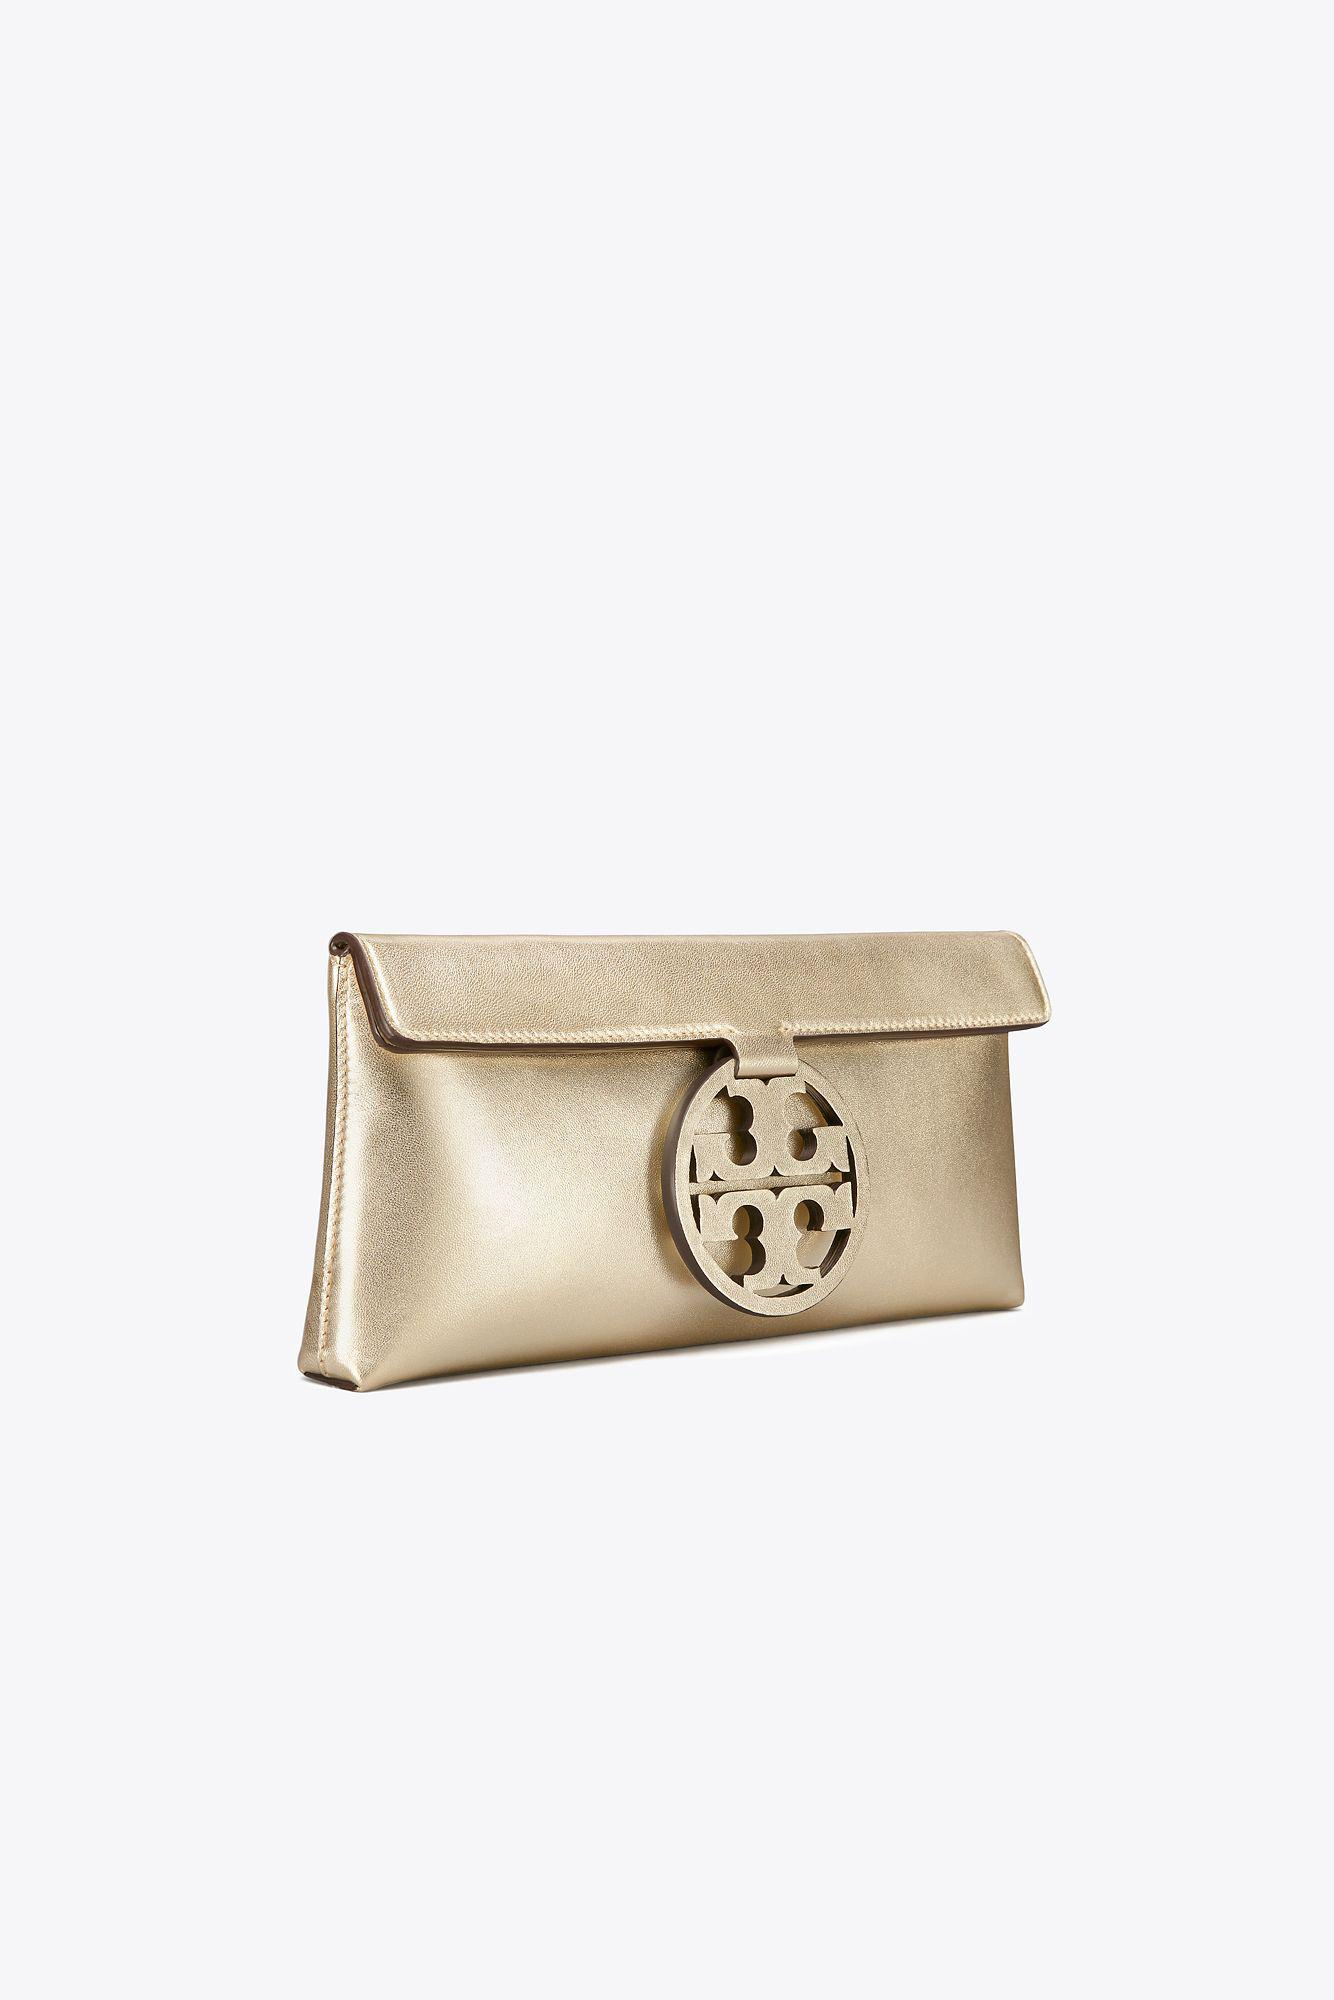 Discount Very Cheap Fashionable Sale Online Tory Burch Miller Metallic Leather Clutch LCtbFet